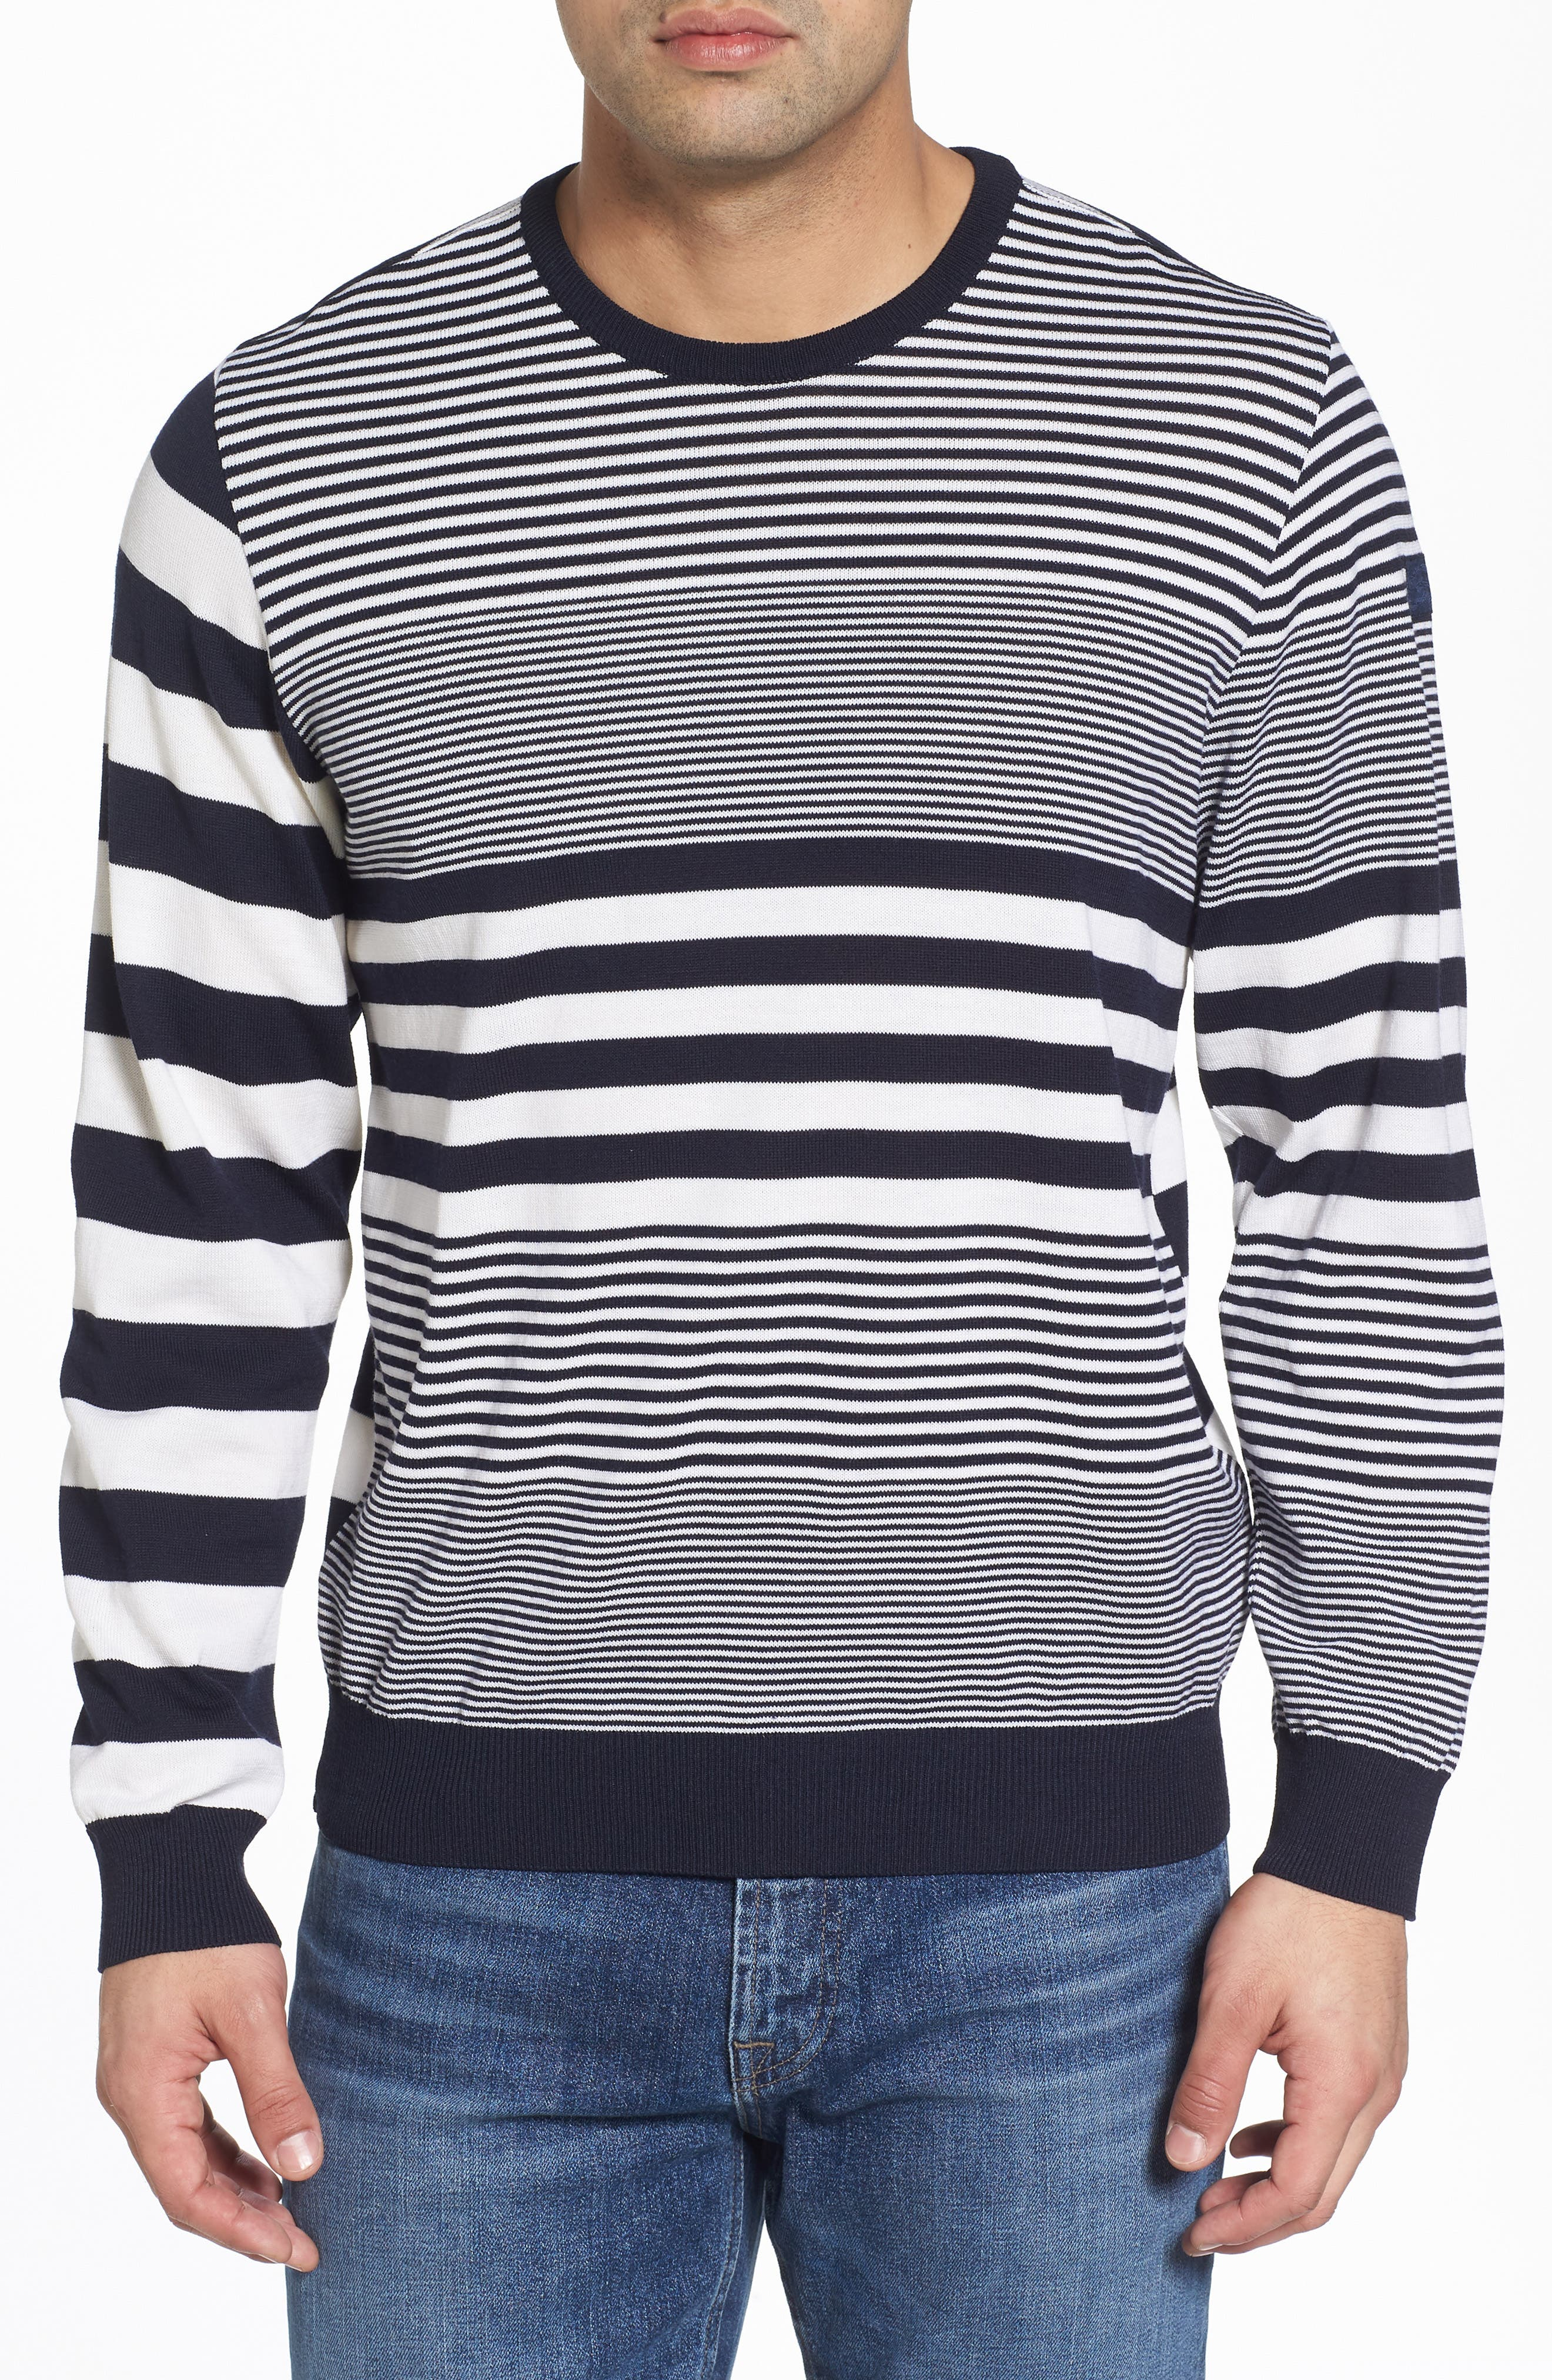 Paul&Shark Stripe Wool Sweater,                         Main,                         color, 115